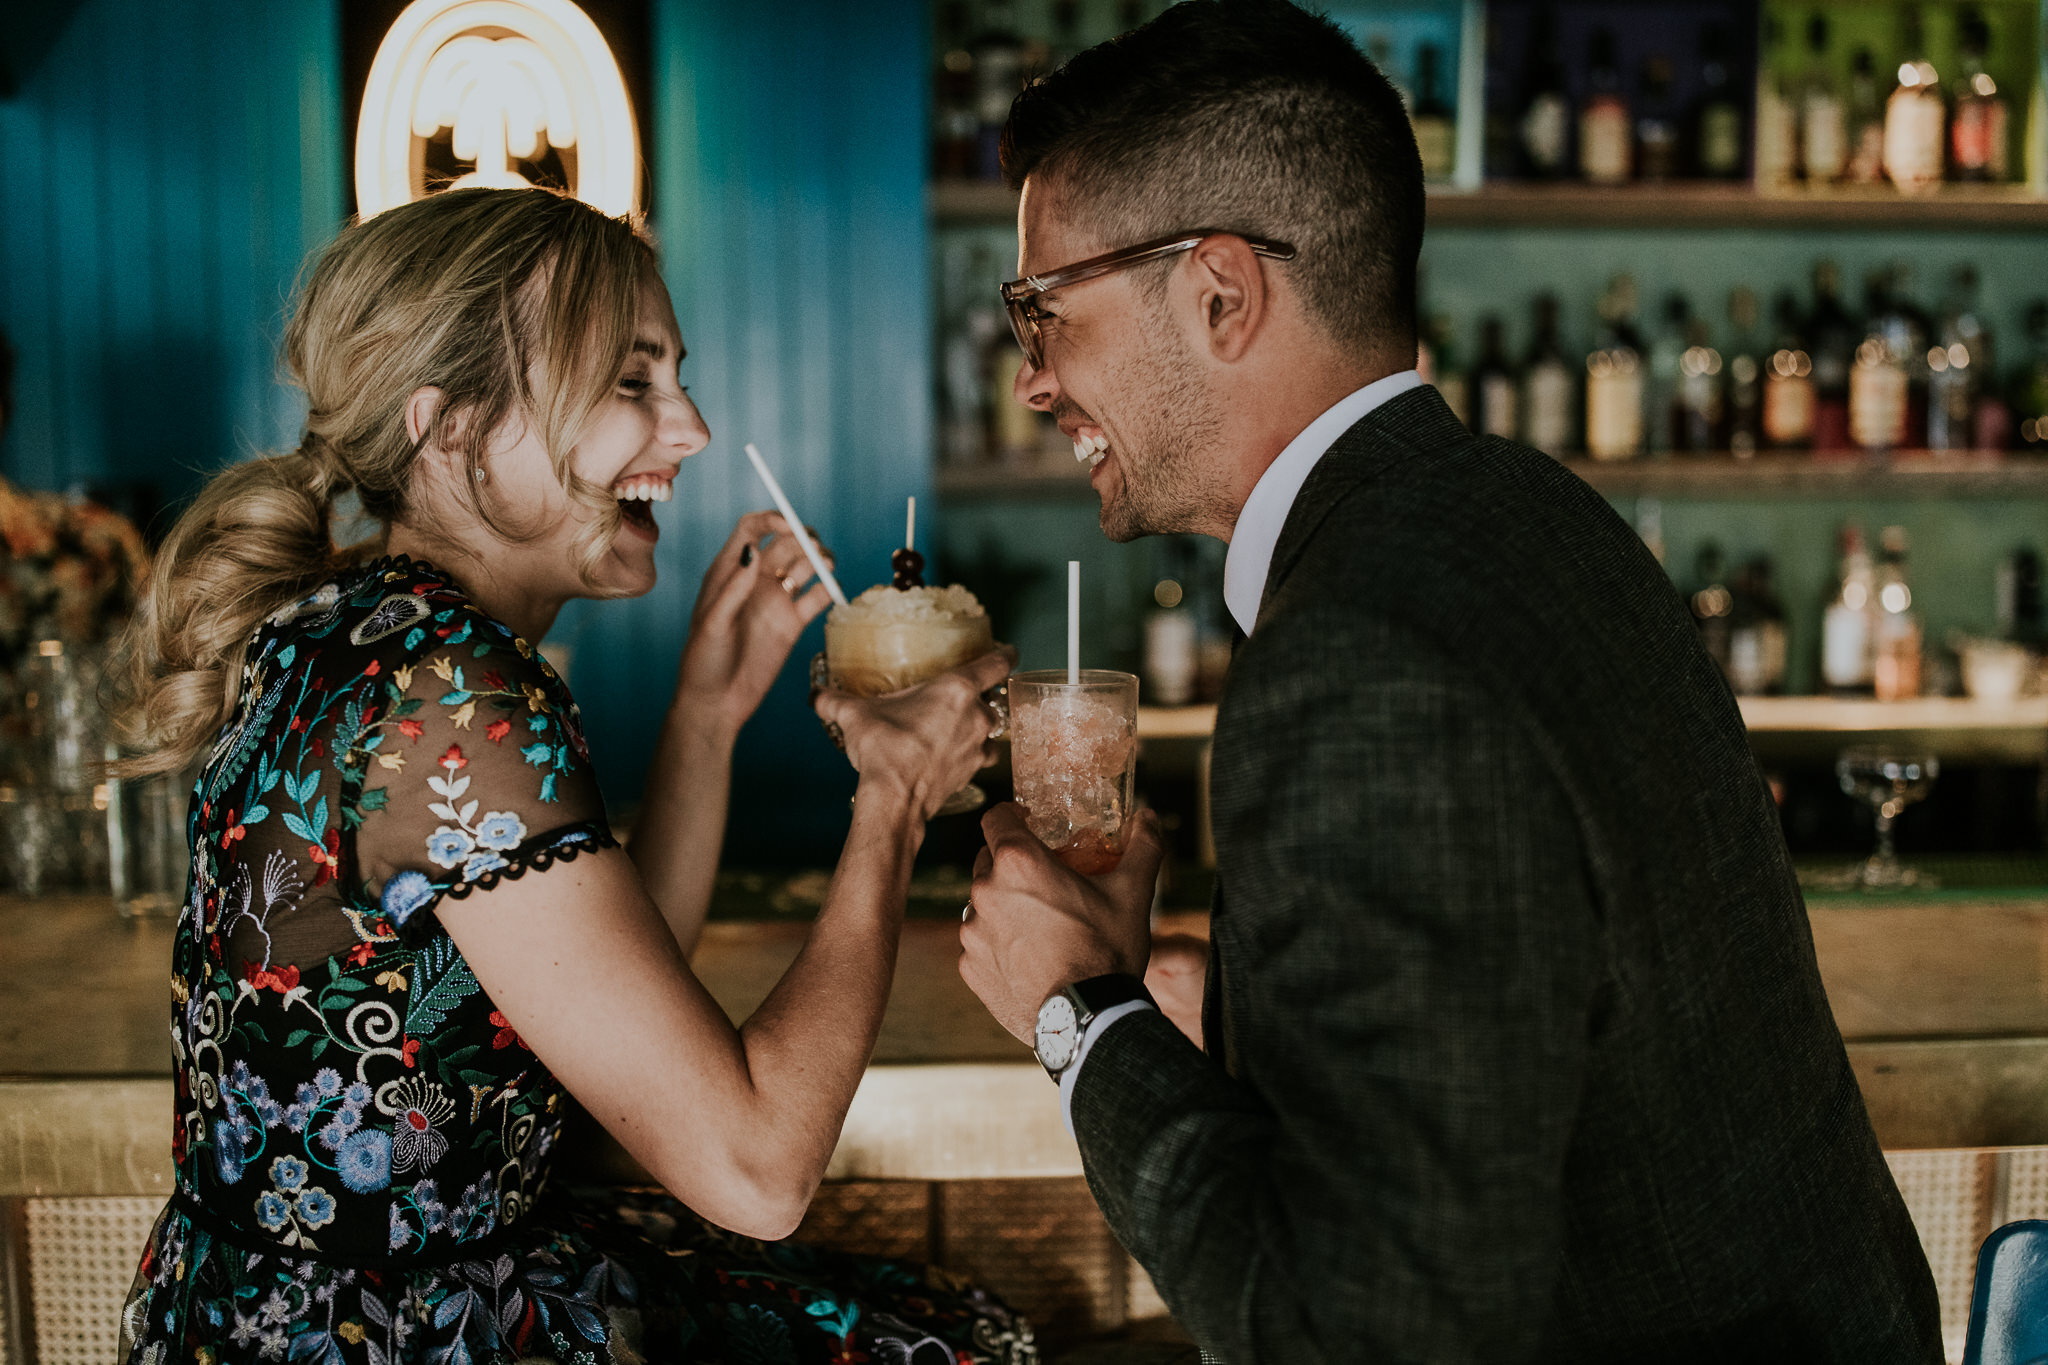 Quirky bride and groom drinking tropical cocktails at Ricardo's Hideaway during wedding reception